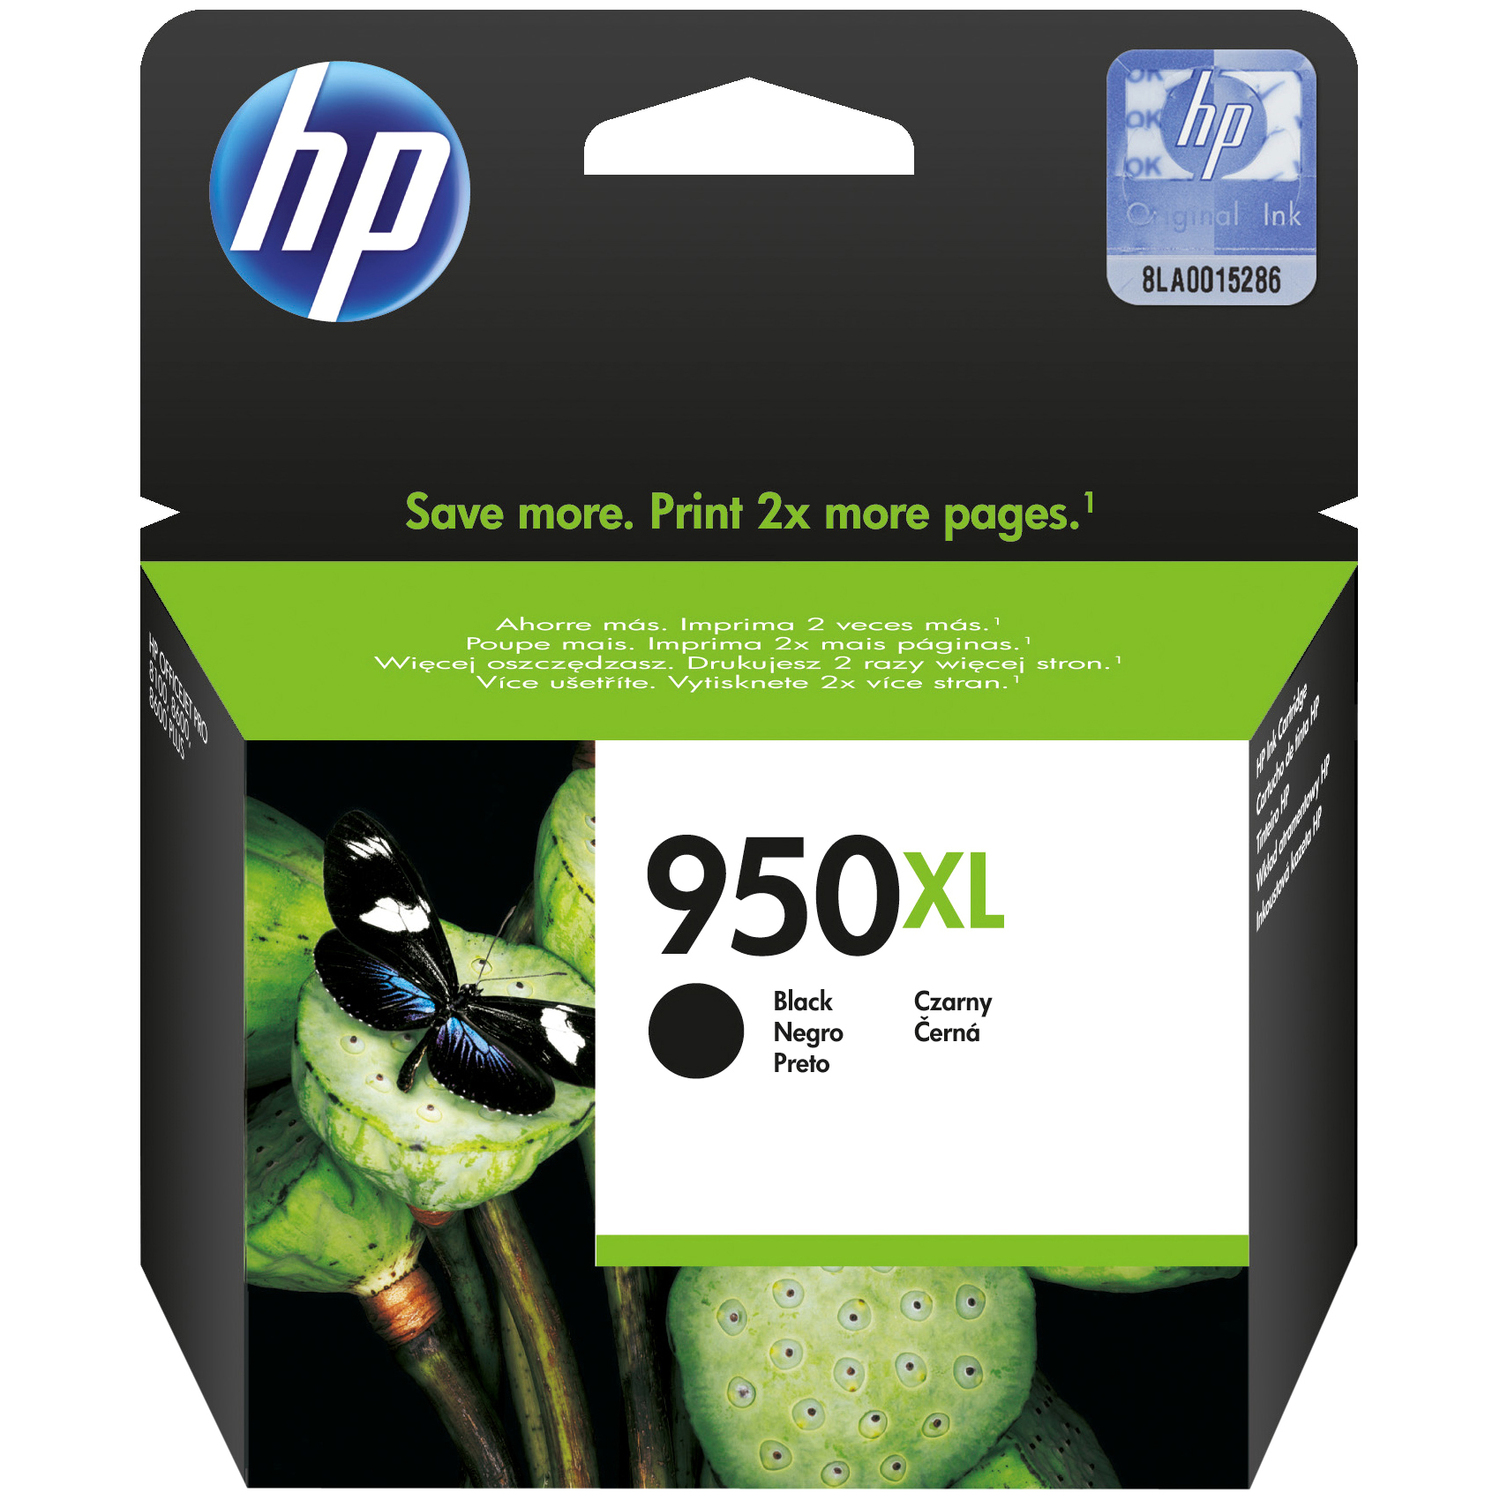 HP 950XL Black Ink Cartridge - CN045AE#BGY